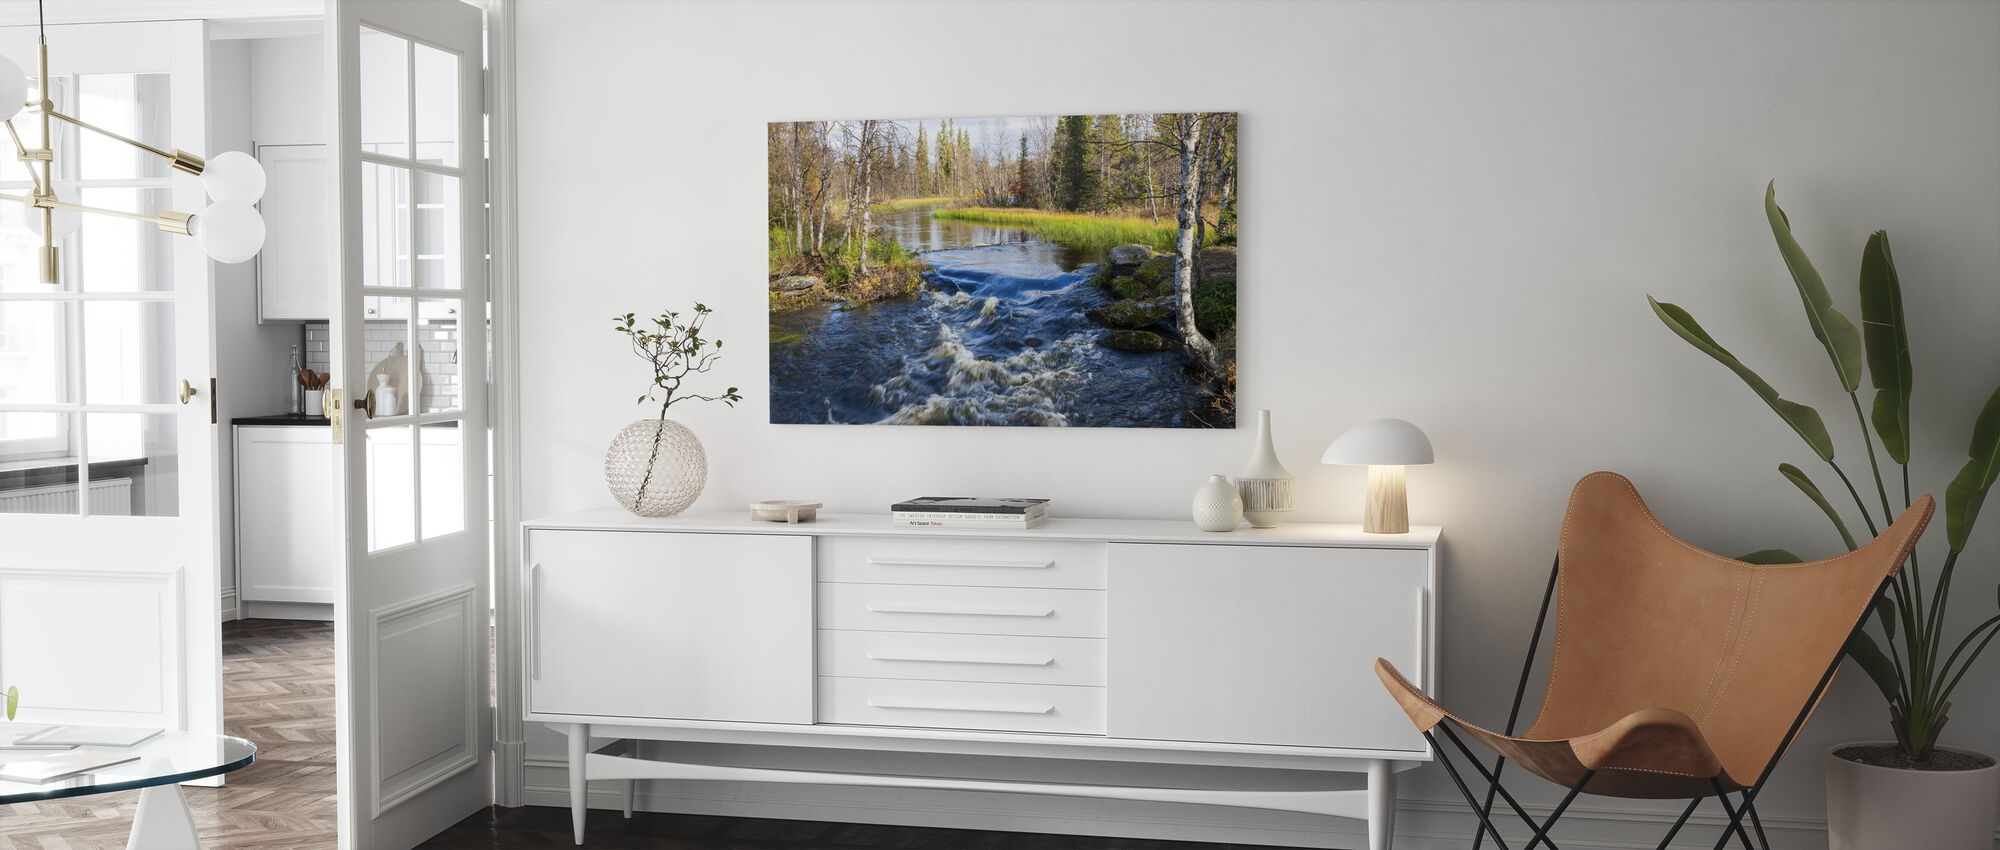 Lapland River - Canvas print - Living Room